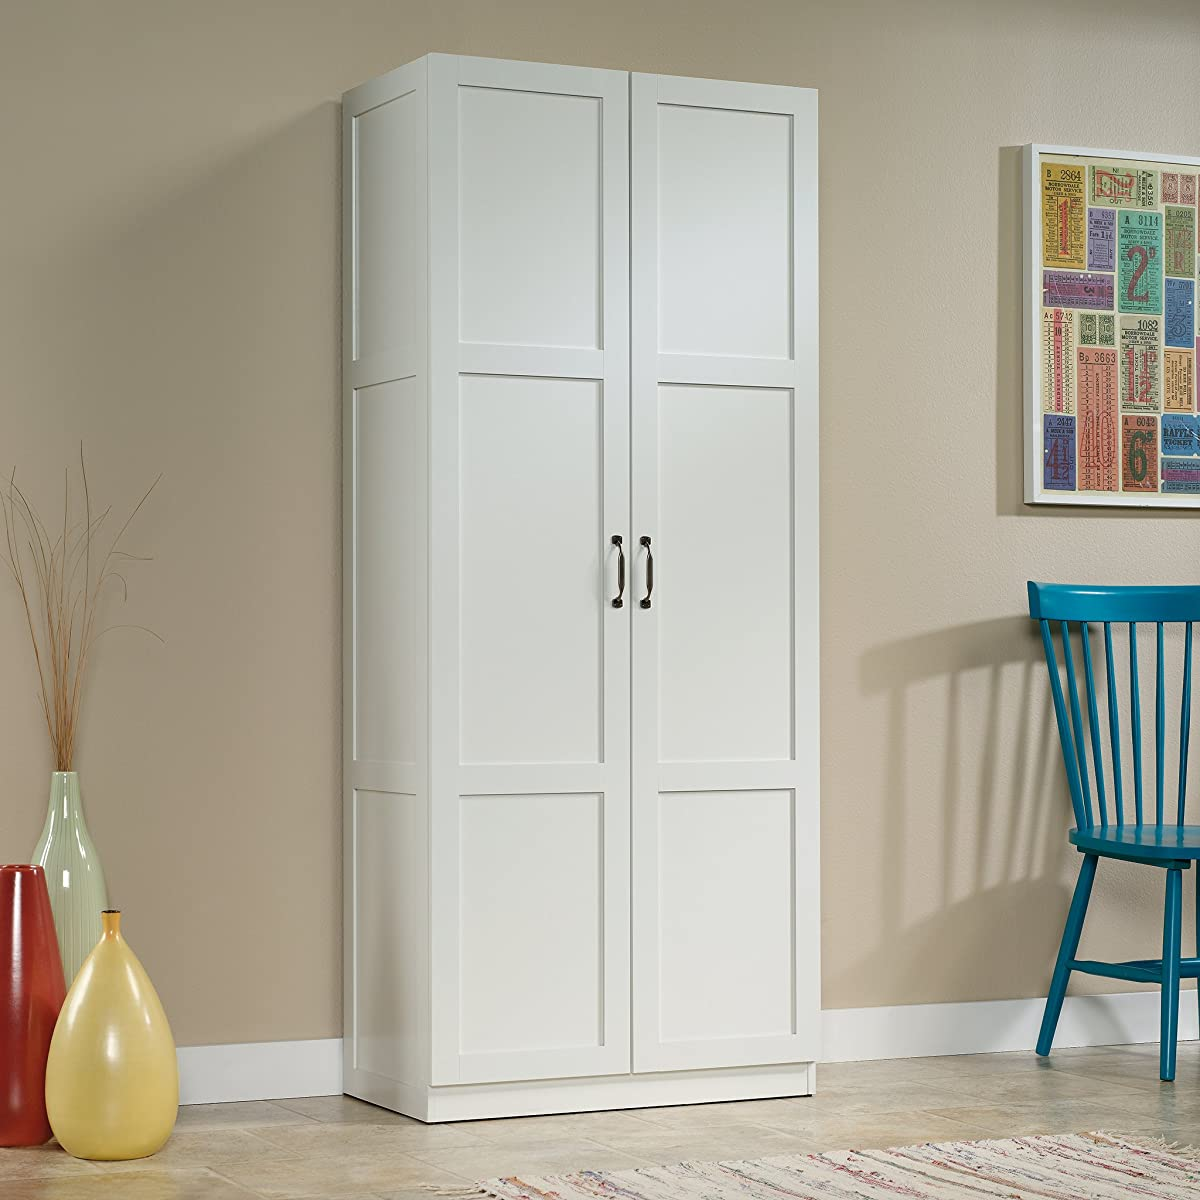 Sauder Storage Cabinet, Soft White Finish